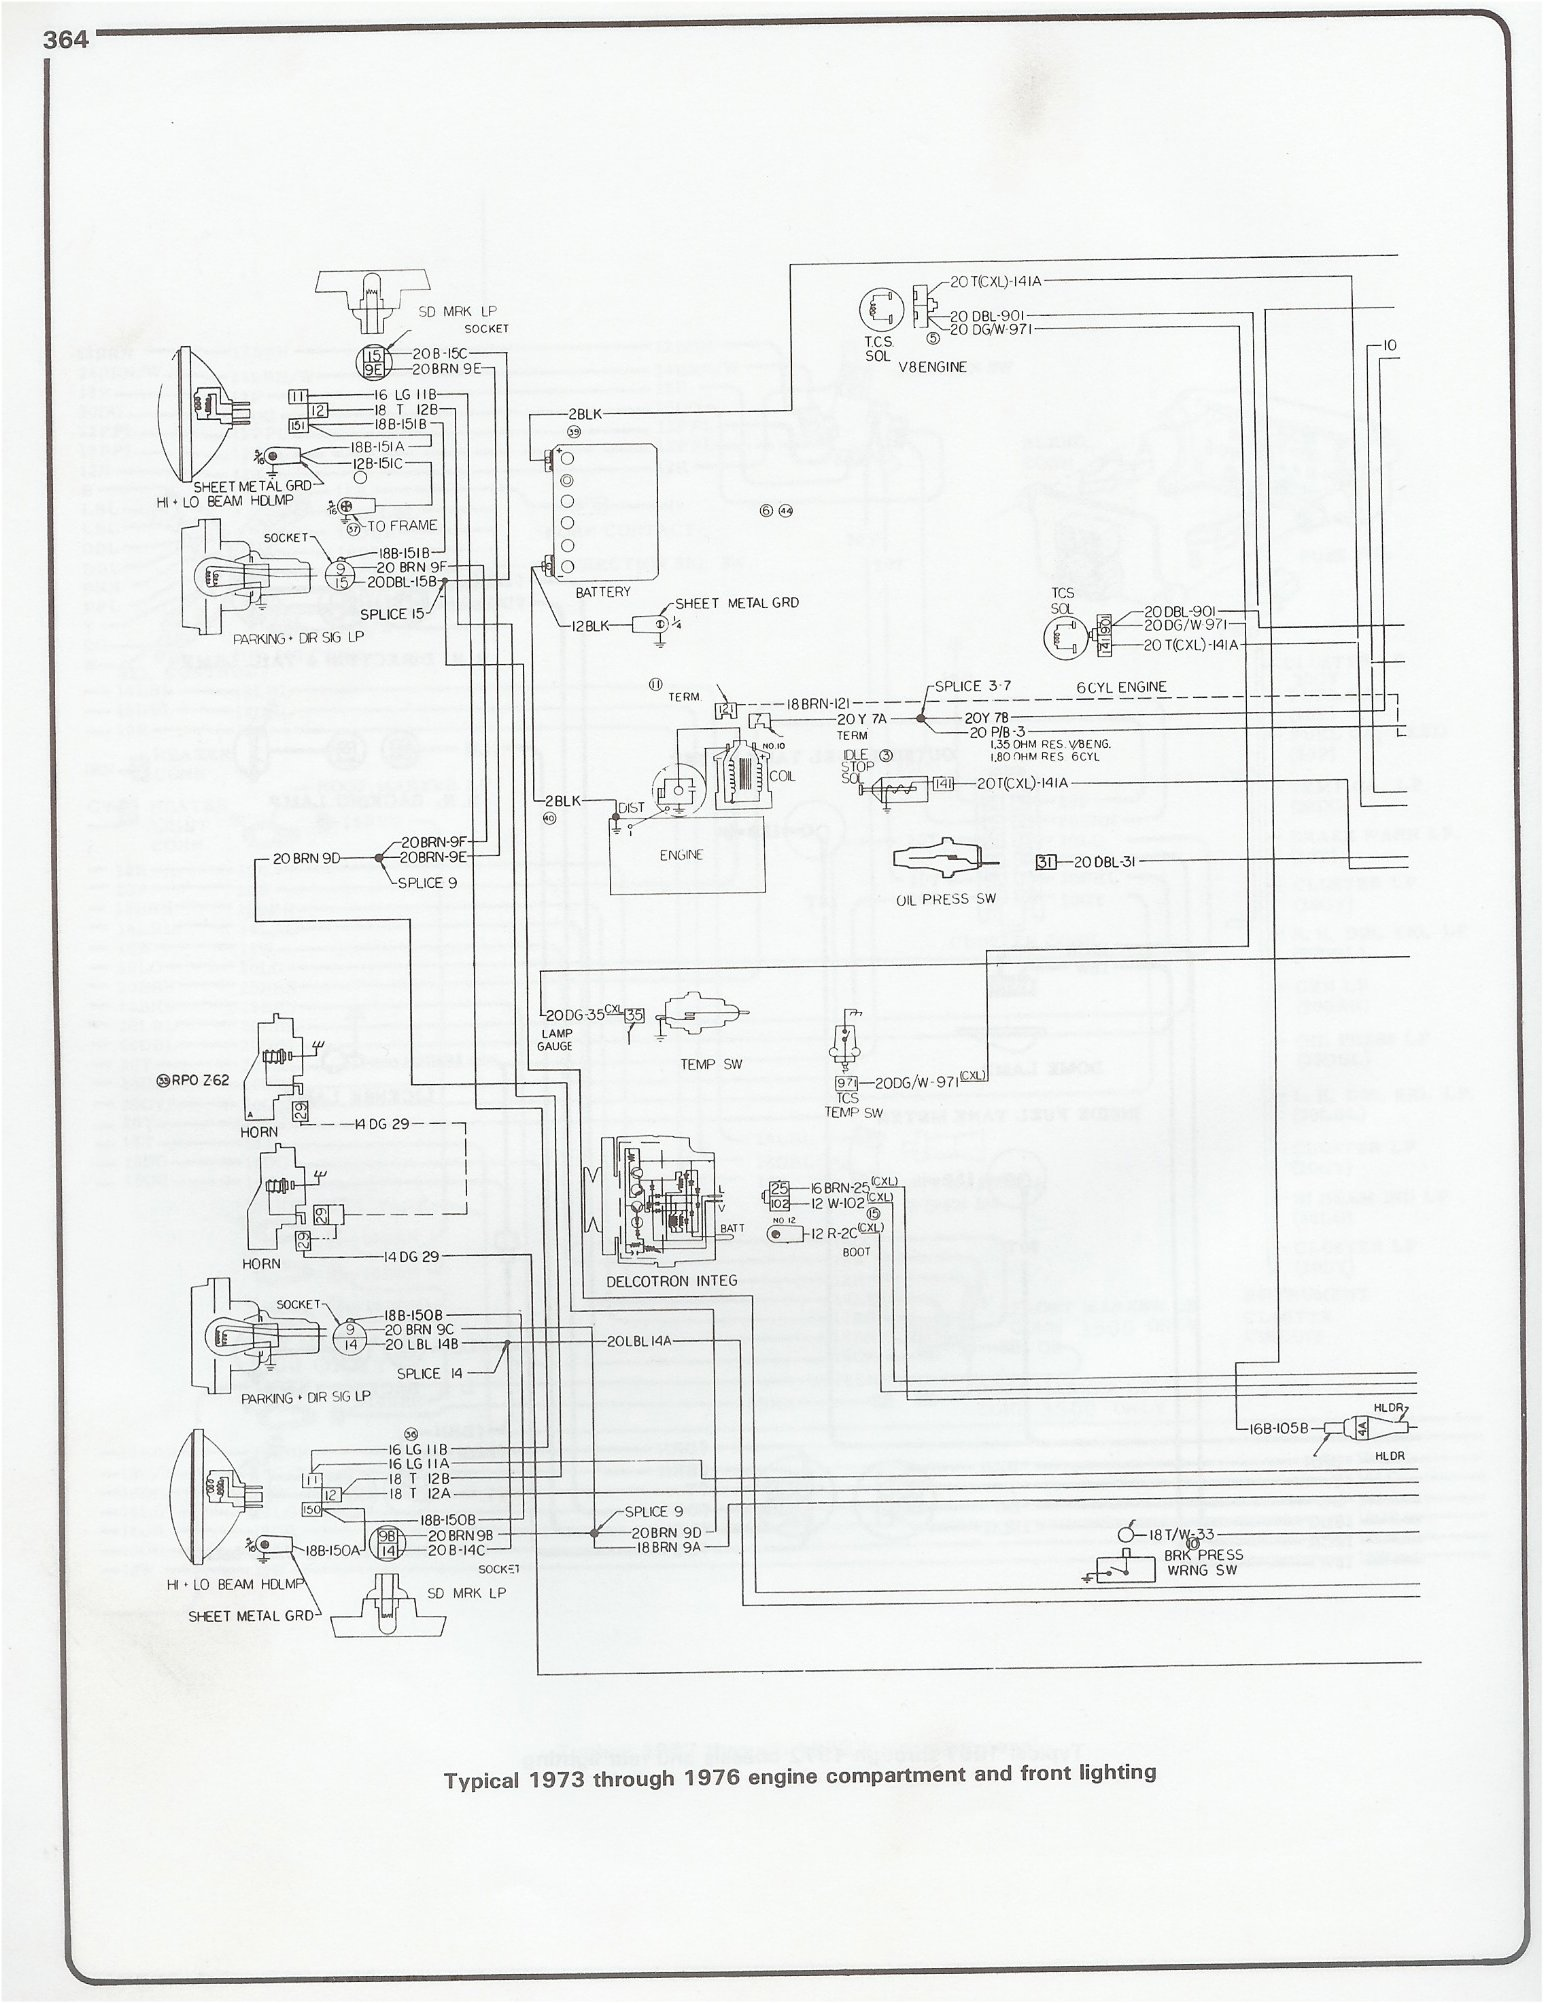 Ignition Switch Wiring Diagram Of A 67 Nova Library Schematic For 1970 Firebird Complete 73 87 Diagrams 1967 C30